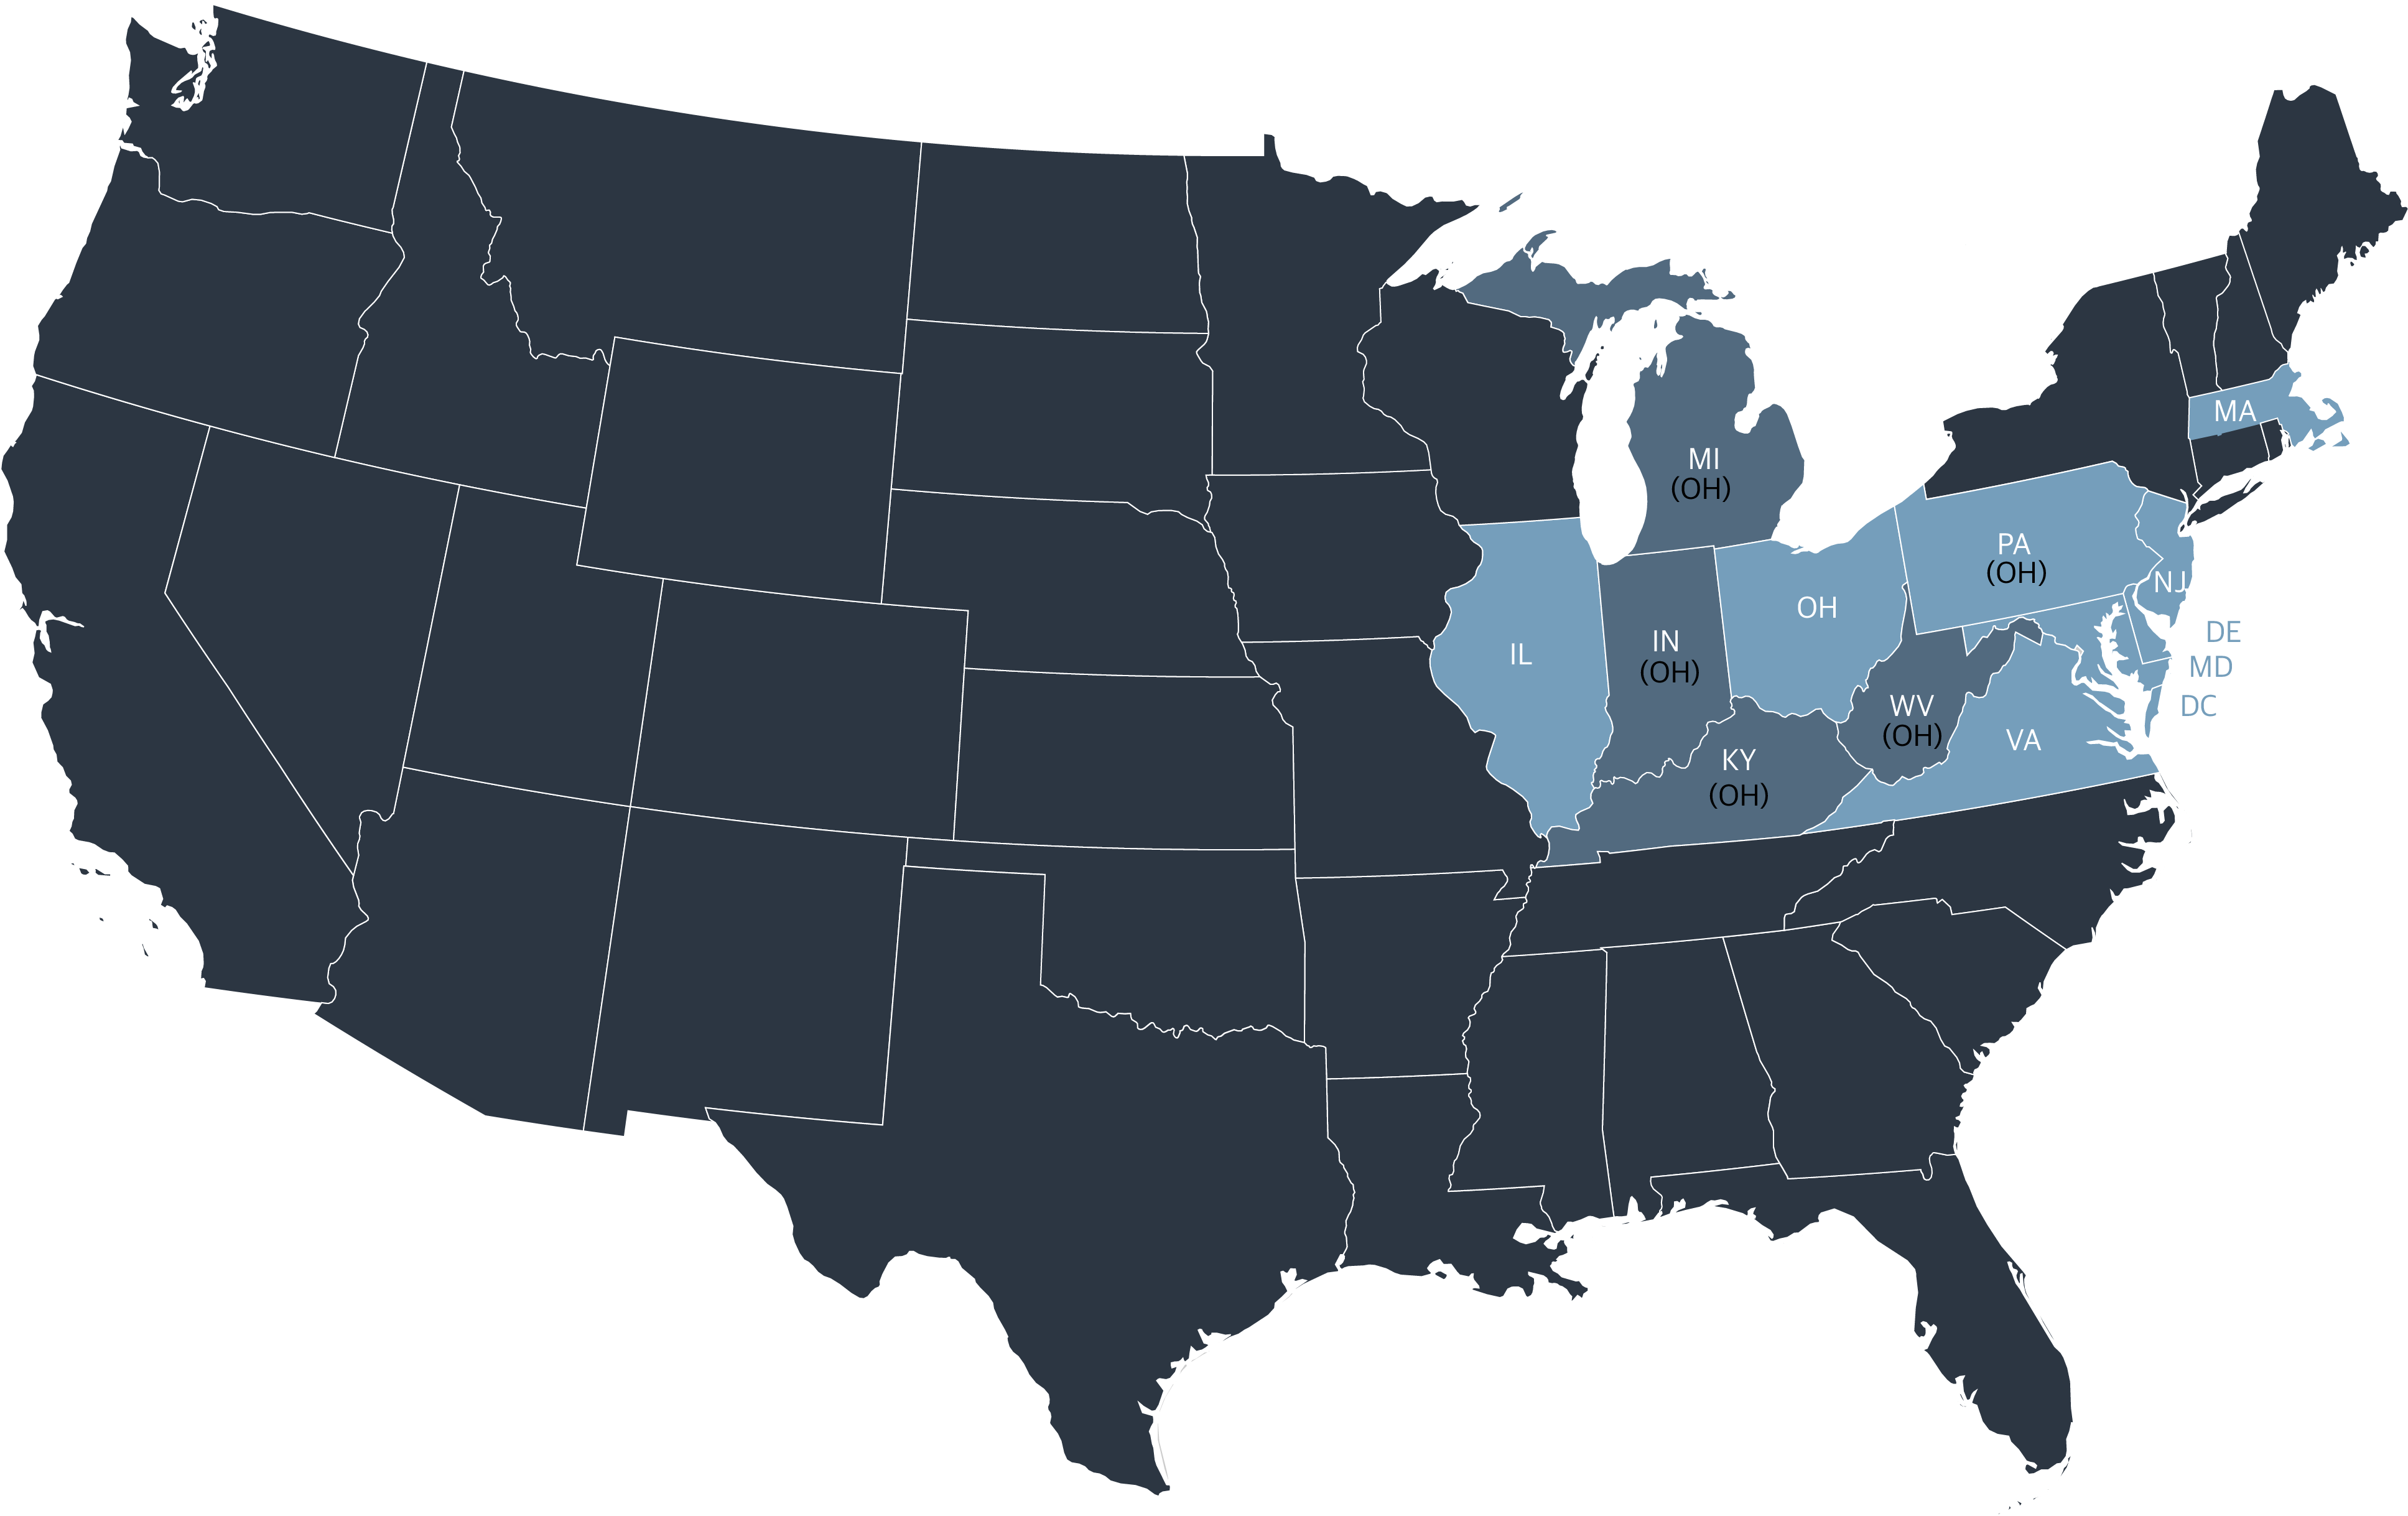 Map of the USA showing SREC states